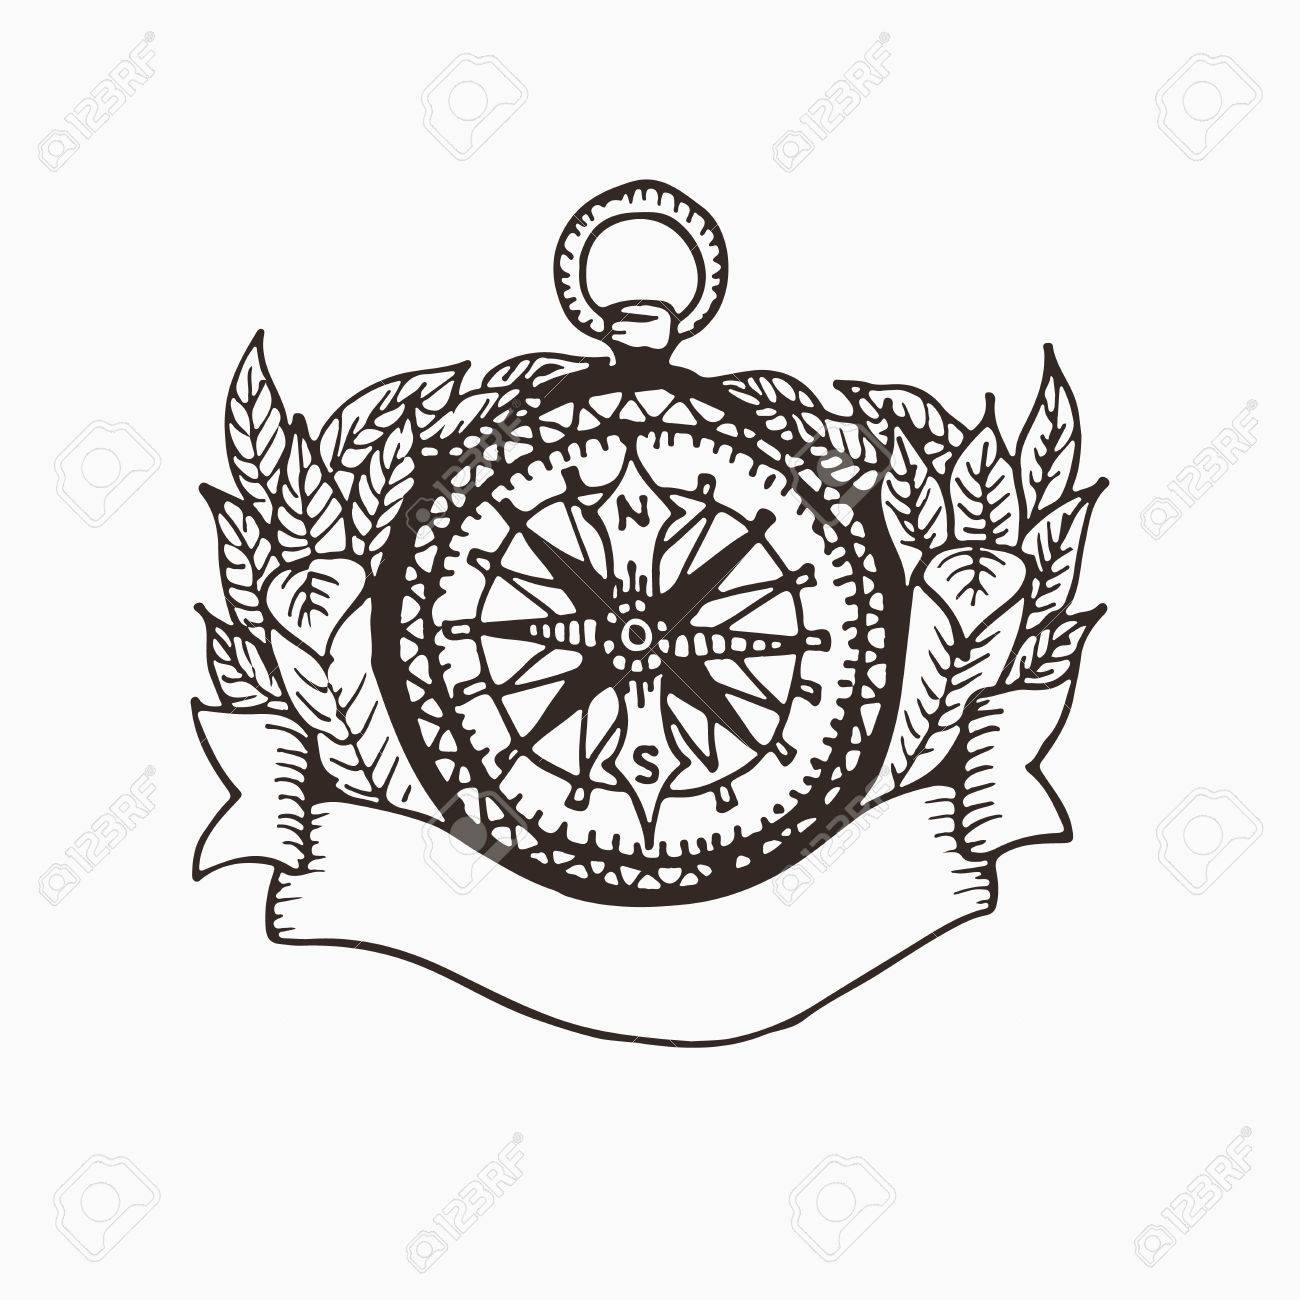 1300x1300 Hand Drawn Compass Illustration With Ribbon For Text And Leaves